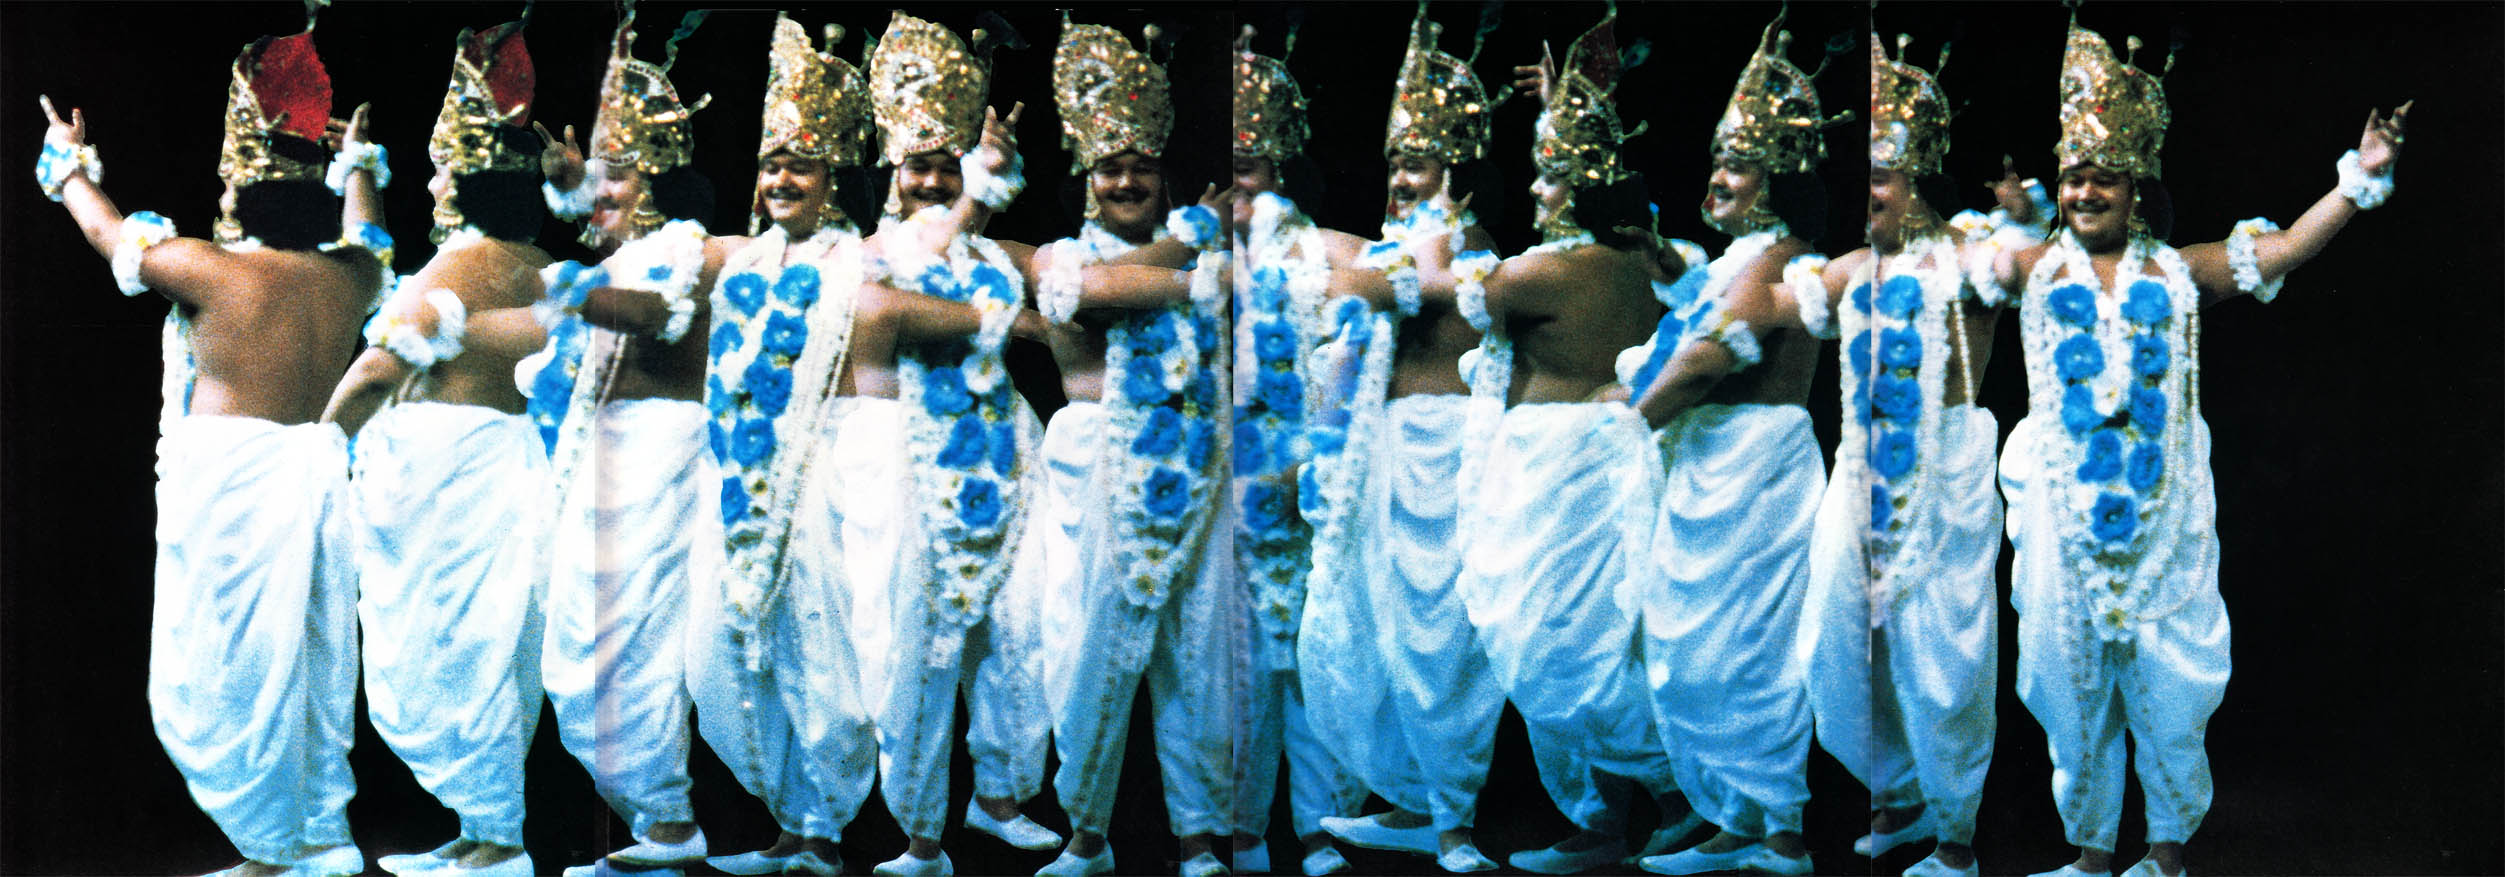 Prem Rawat (Maharaji) Dressed As Krishna Dancing On Stage Photo Montage